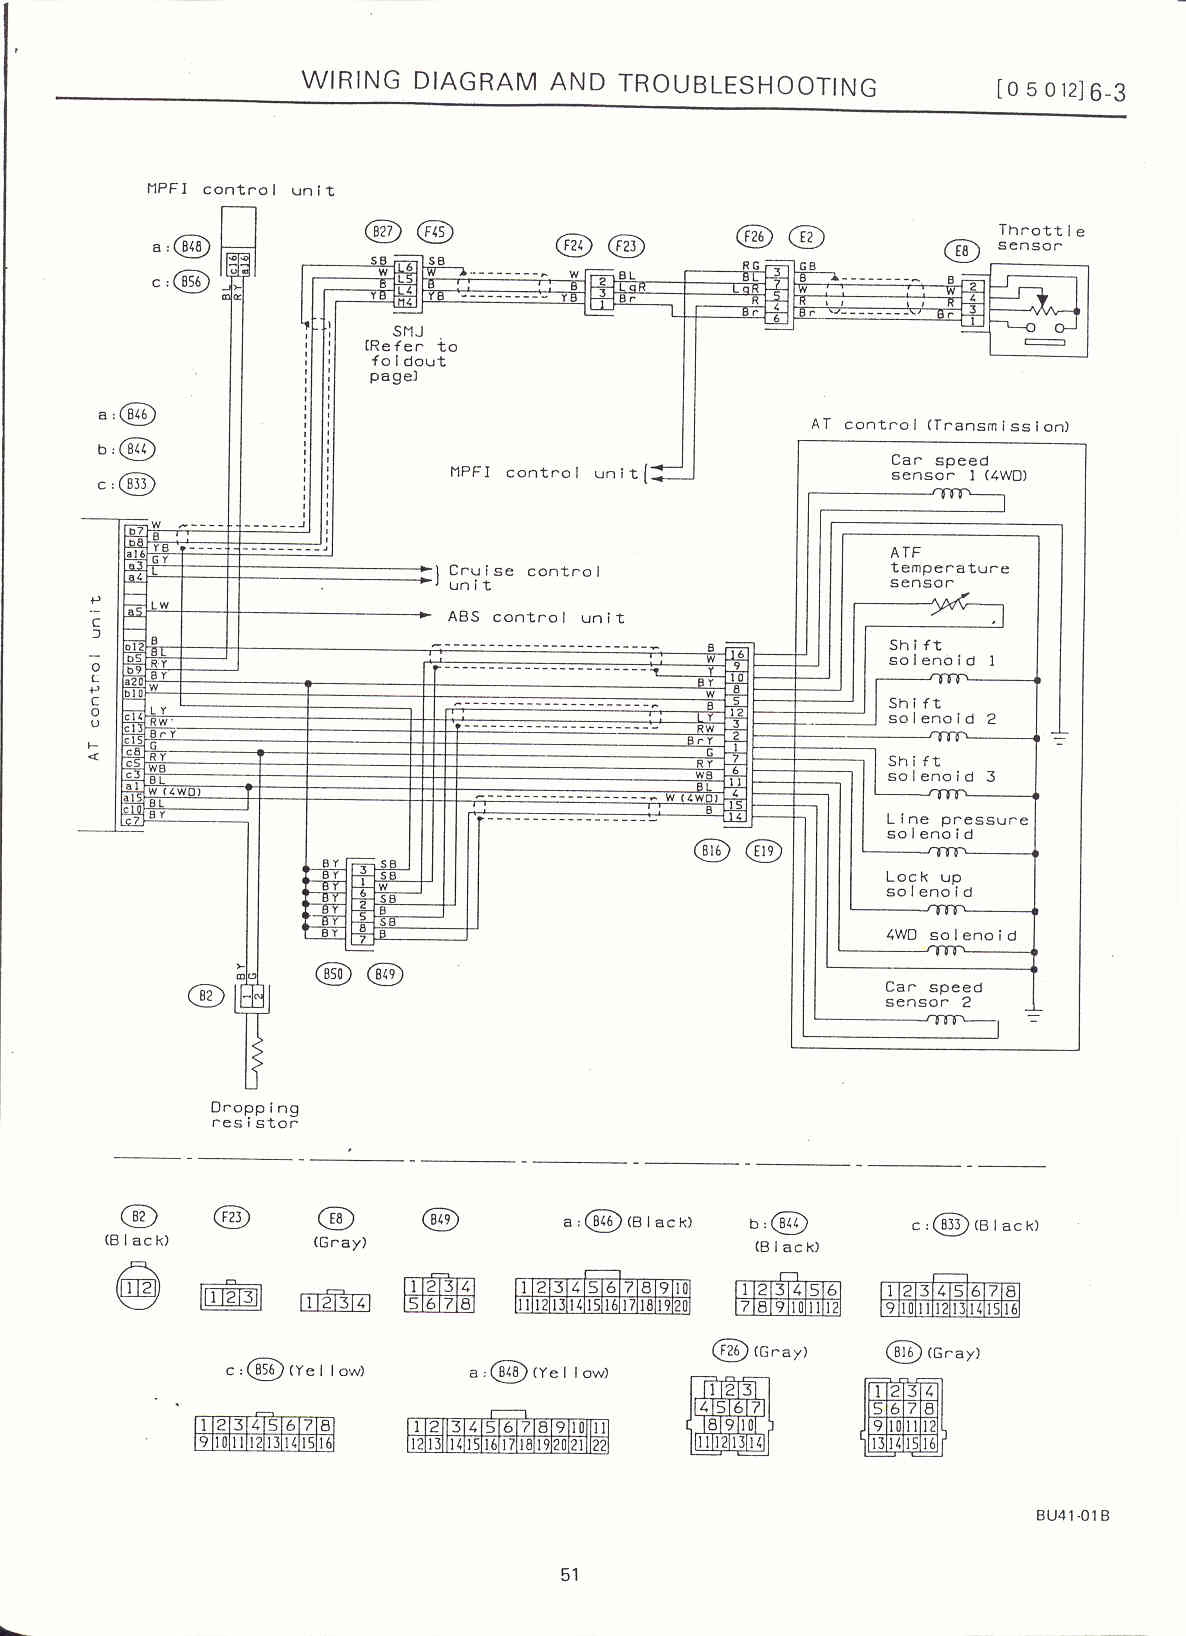 1990 Subaru Legacy Wiring Diagram Change Your Idea With 1998 Ss Harness 29 Images 1999 L